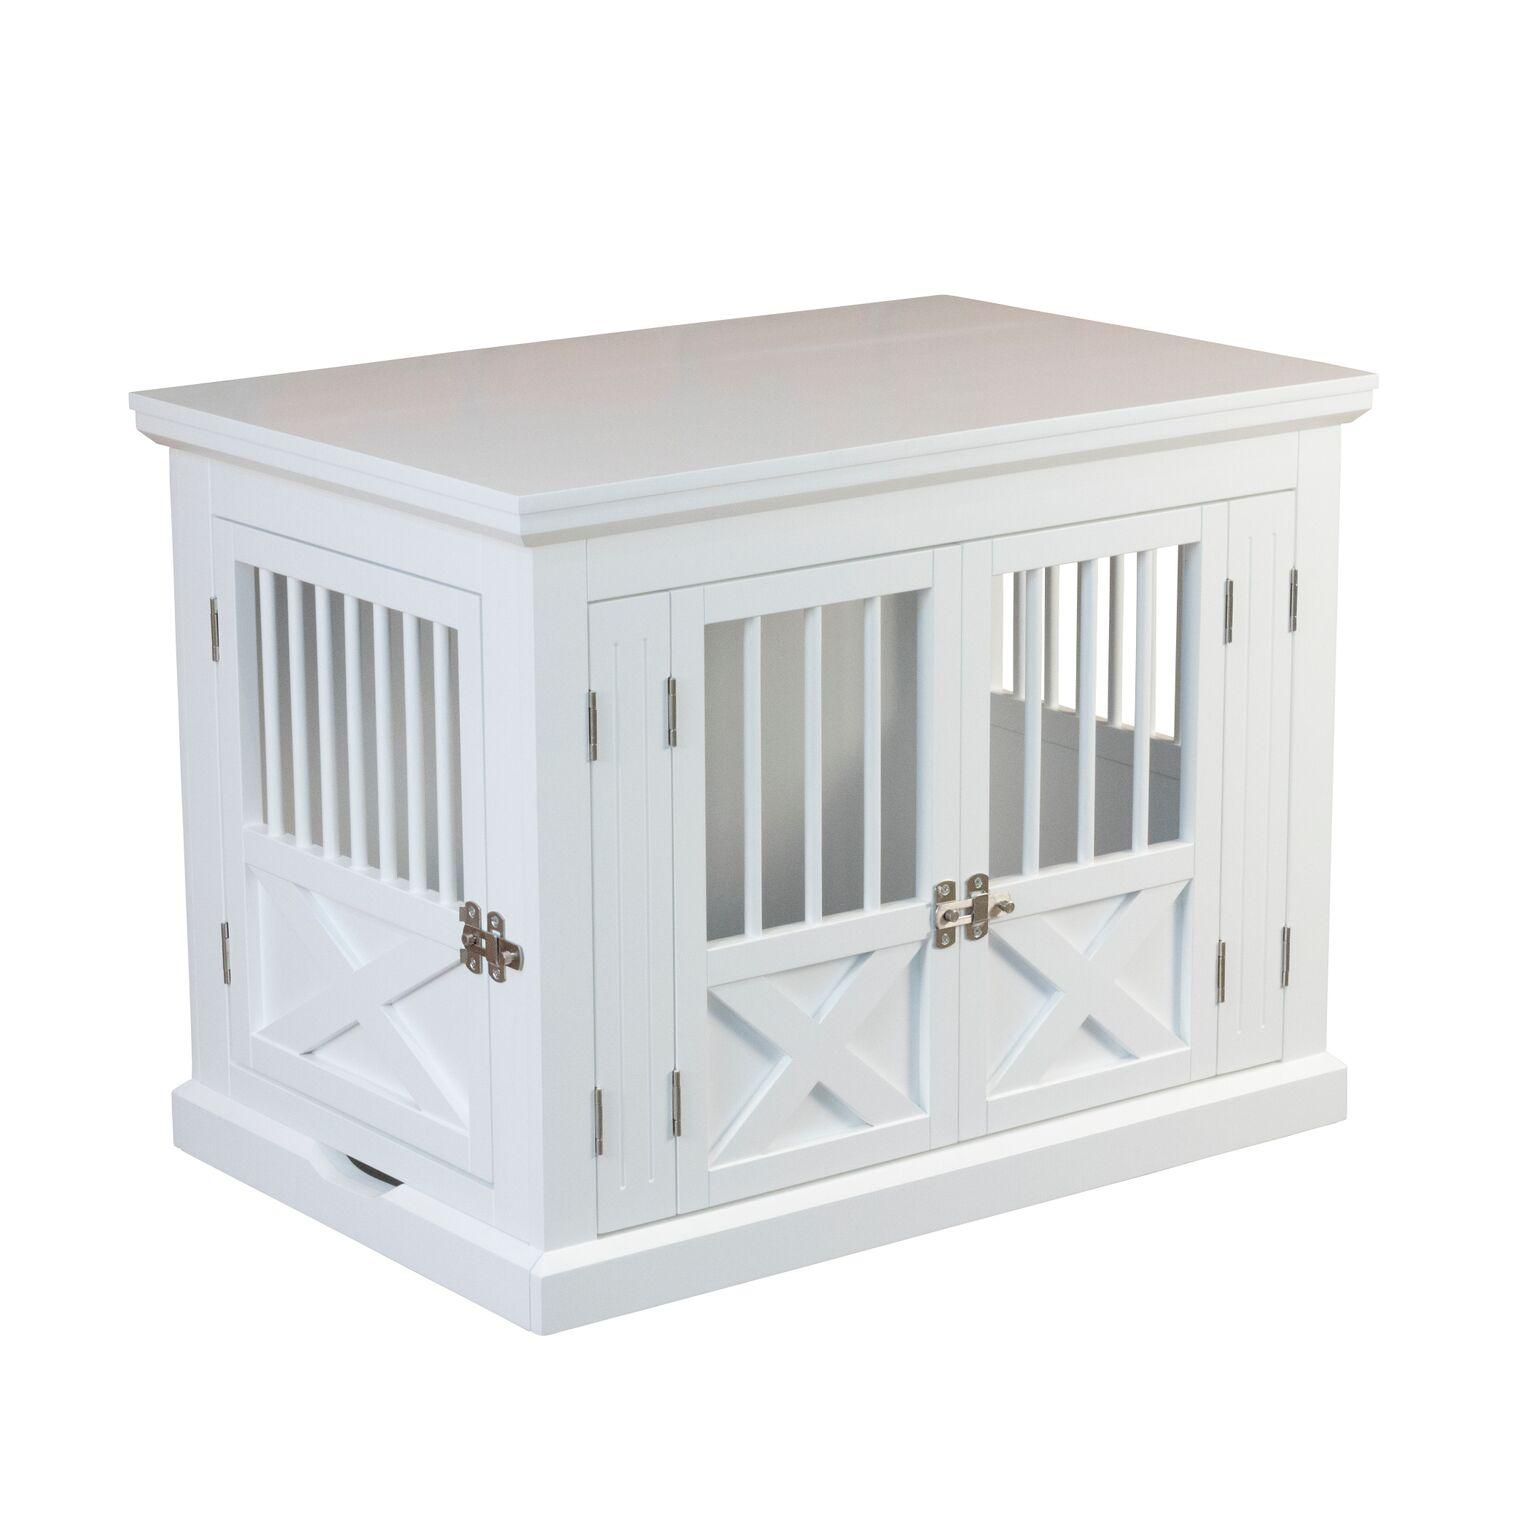 Merry Products Triple Door End Table Dog Crate - White